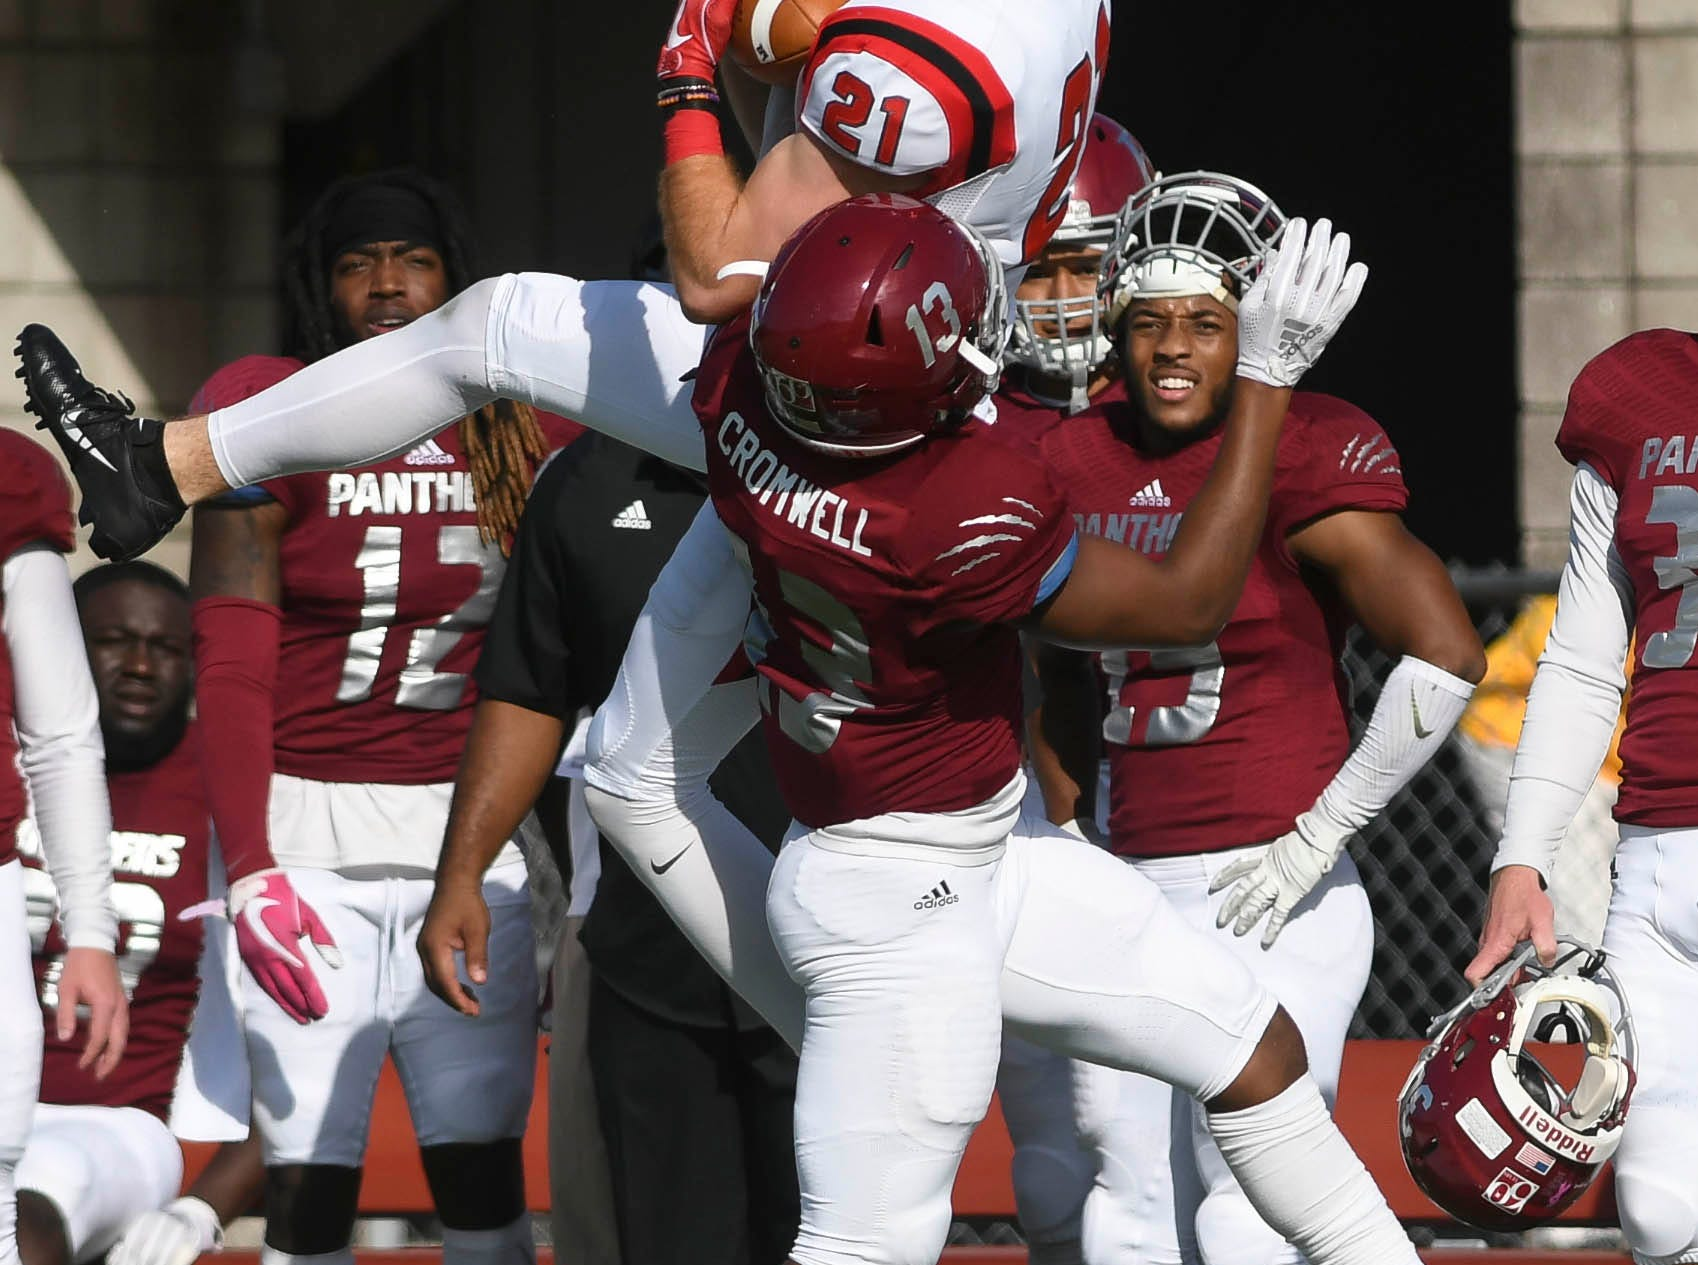 Tyrone Cromwell of Florida Tech breaks up a pass intended for Matthew Martin of North Greenville during Saturday's game.